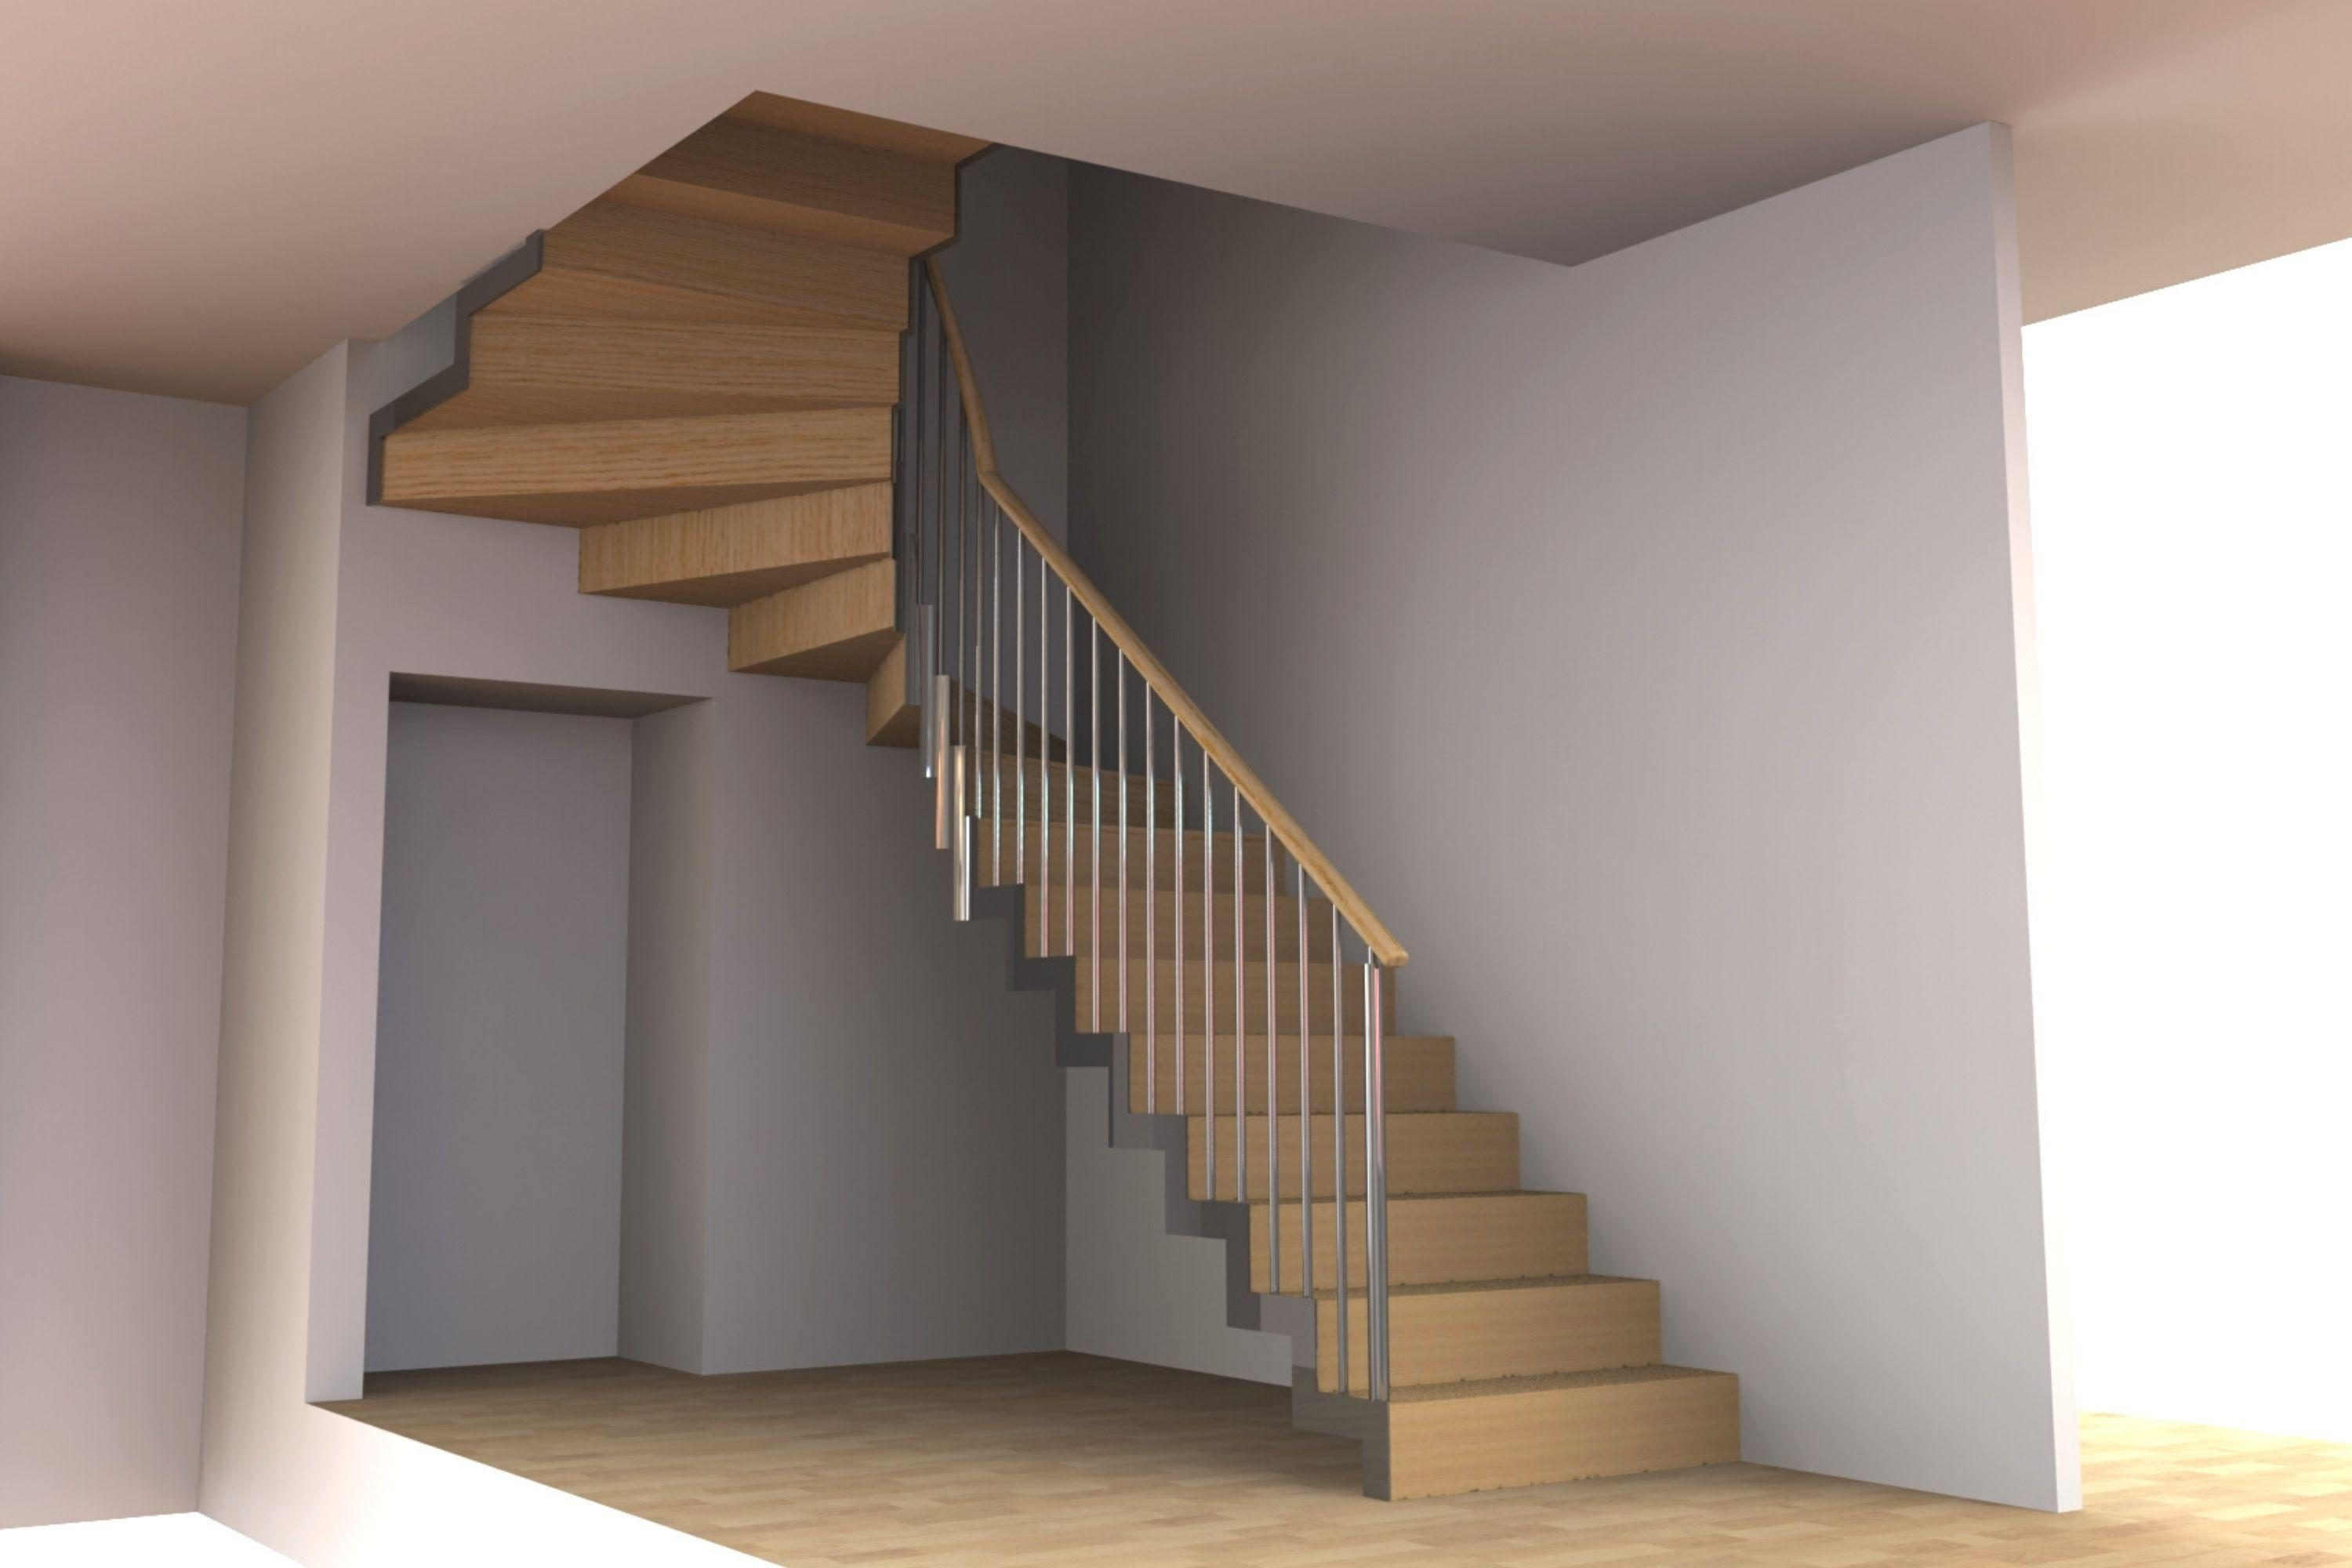 Render of one of bespoke staircases for project Luma